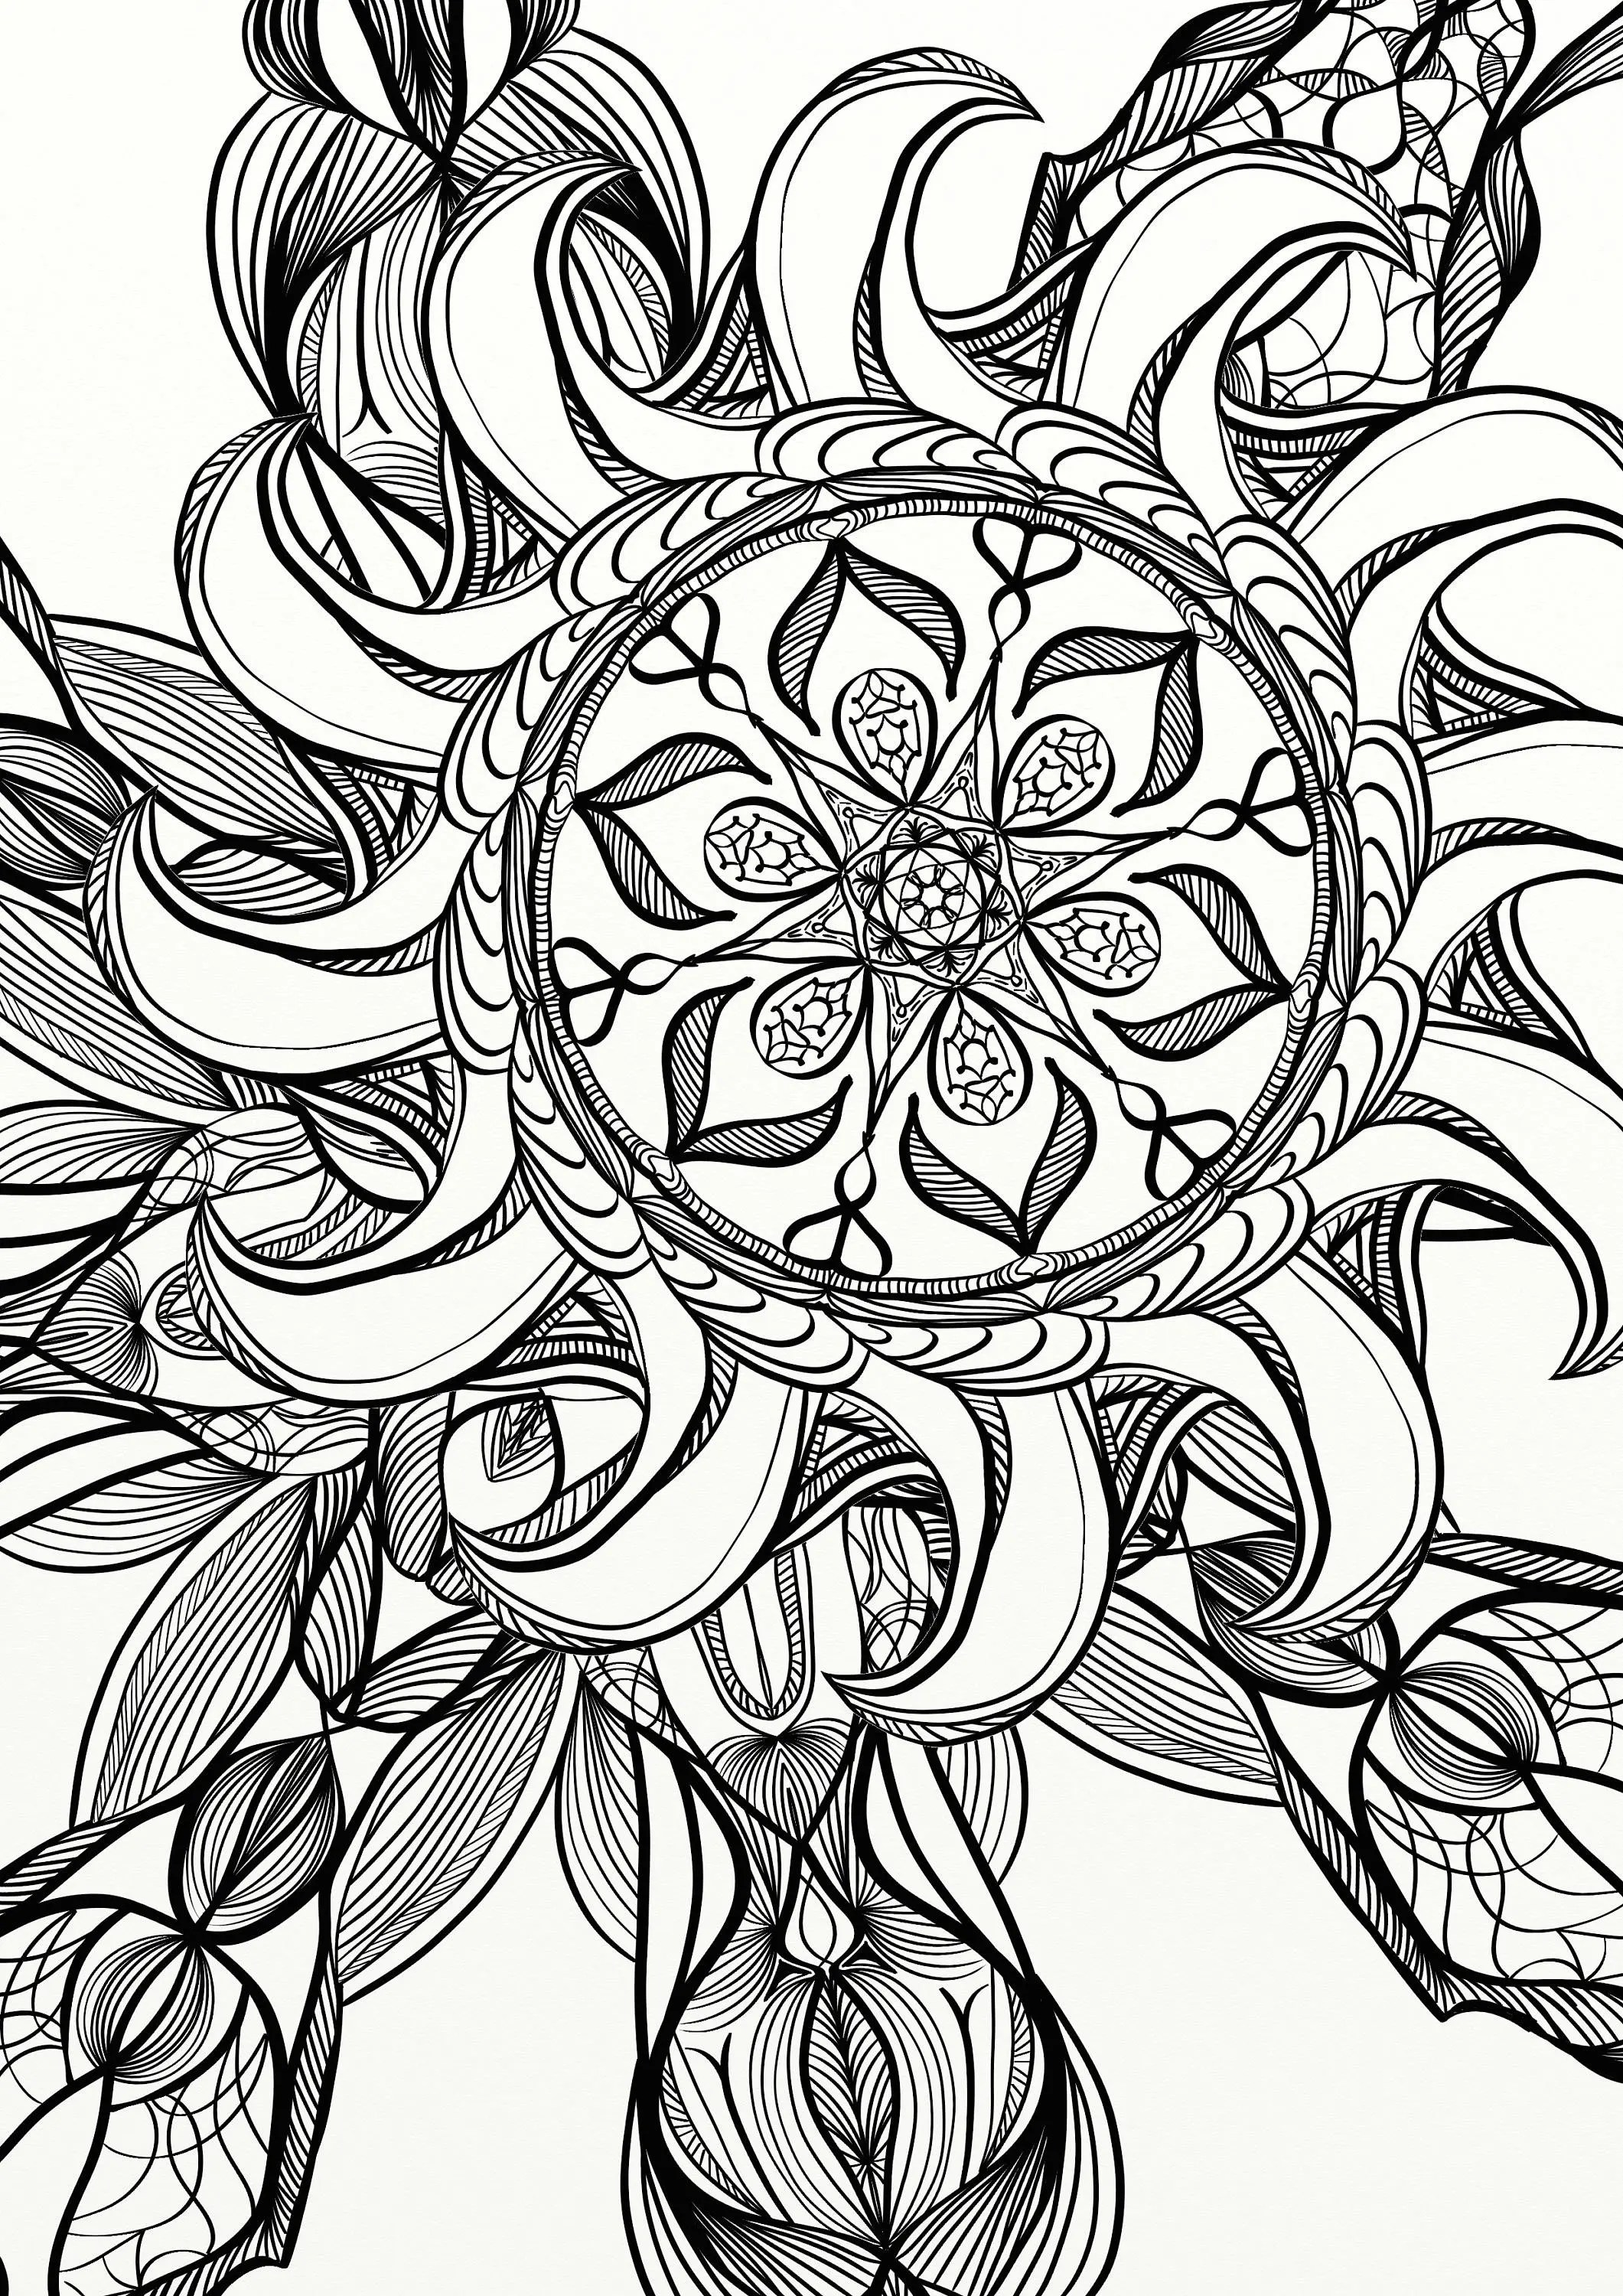 Mandala Spiral Relaxing Adult Coloring Page | Etsy | cool coloring pages for adults printable